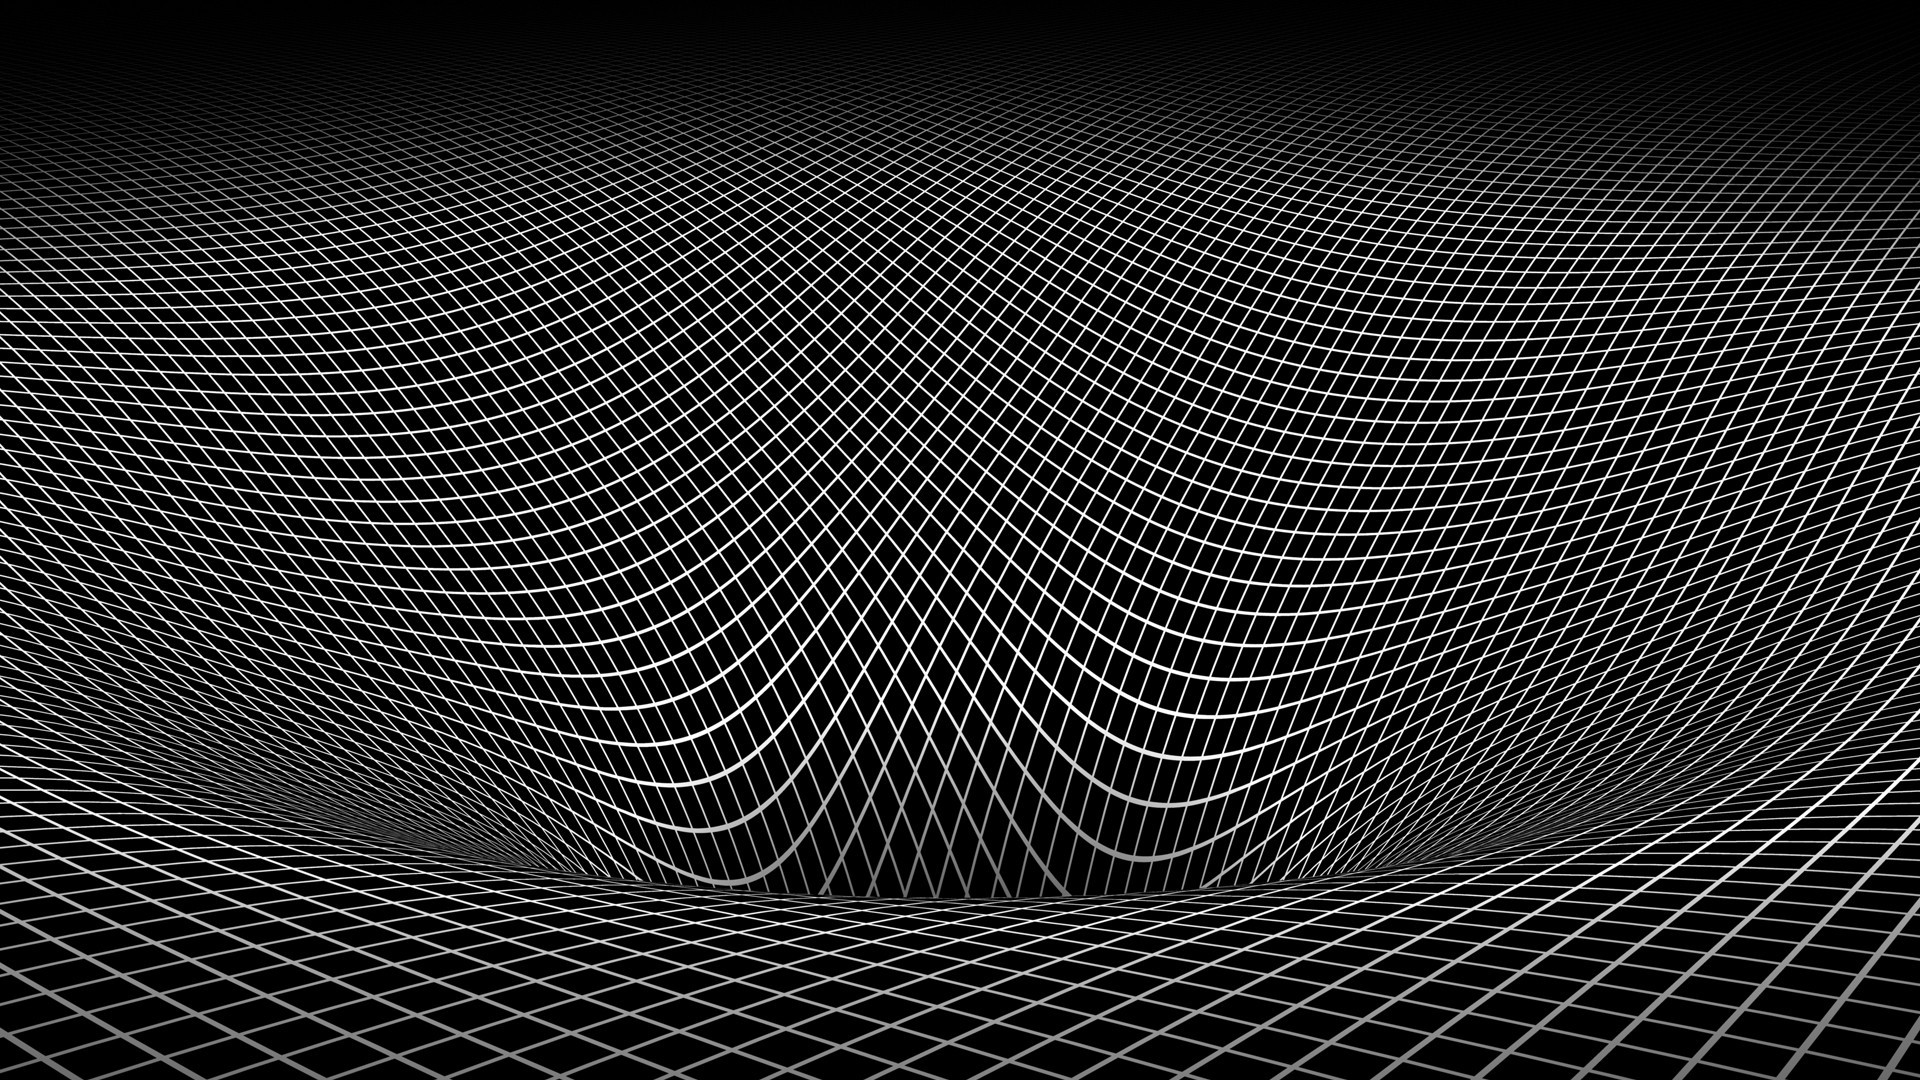 Black and white 3d wallpaper wallpapersafari - White and black wallpaper ...